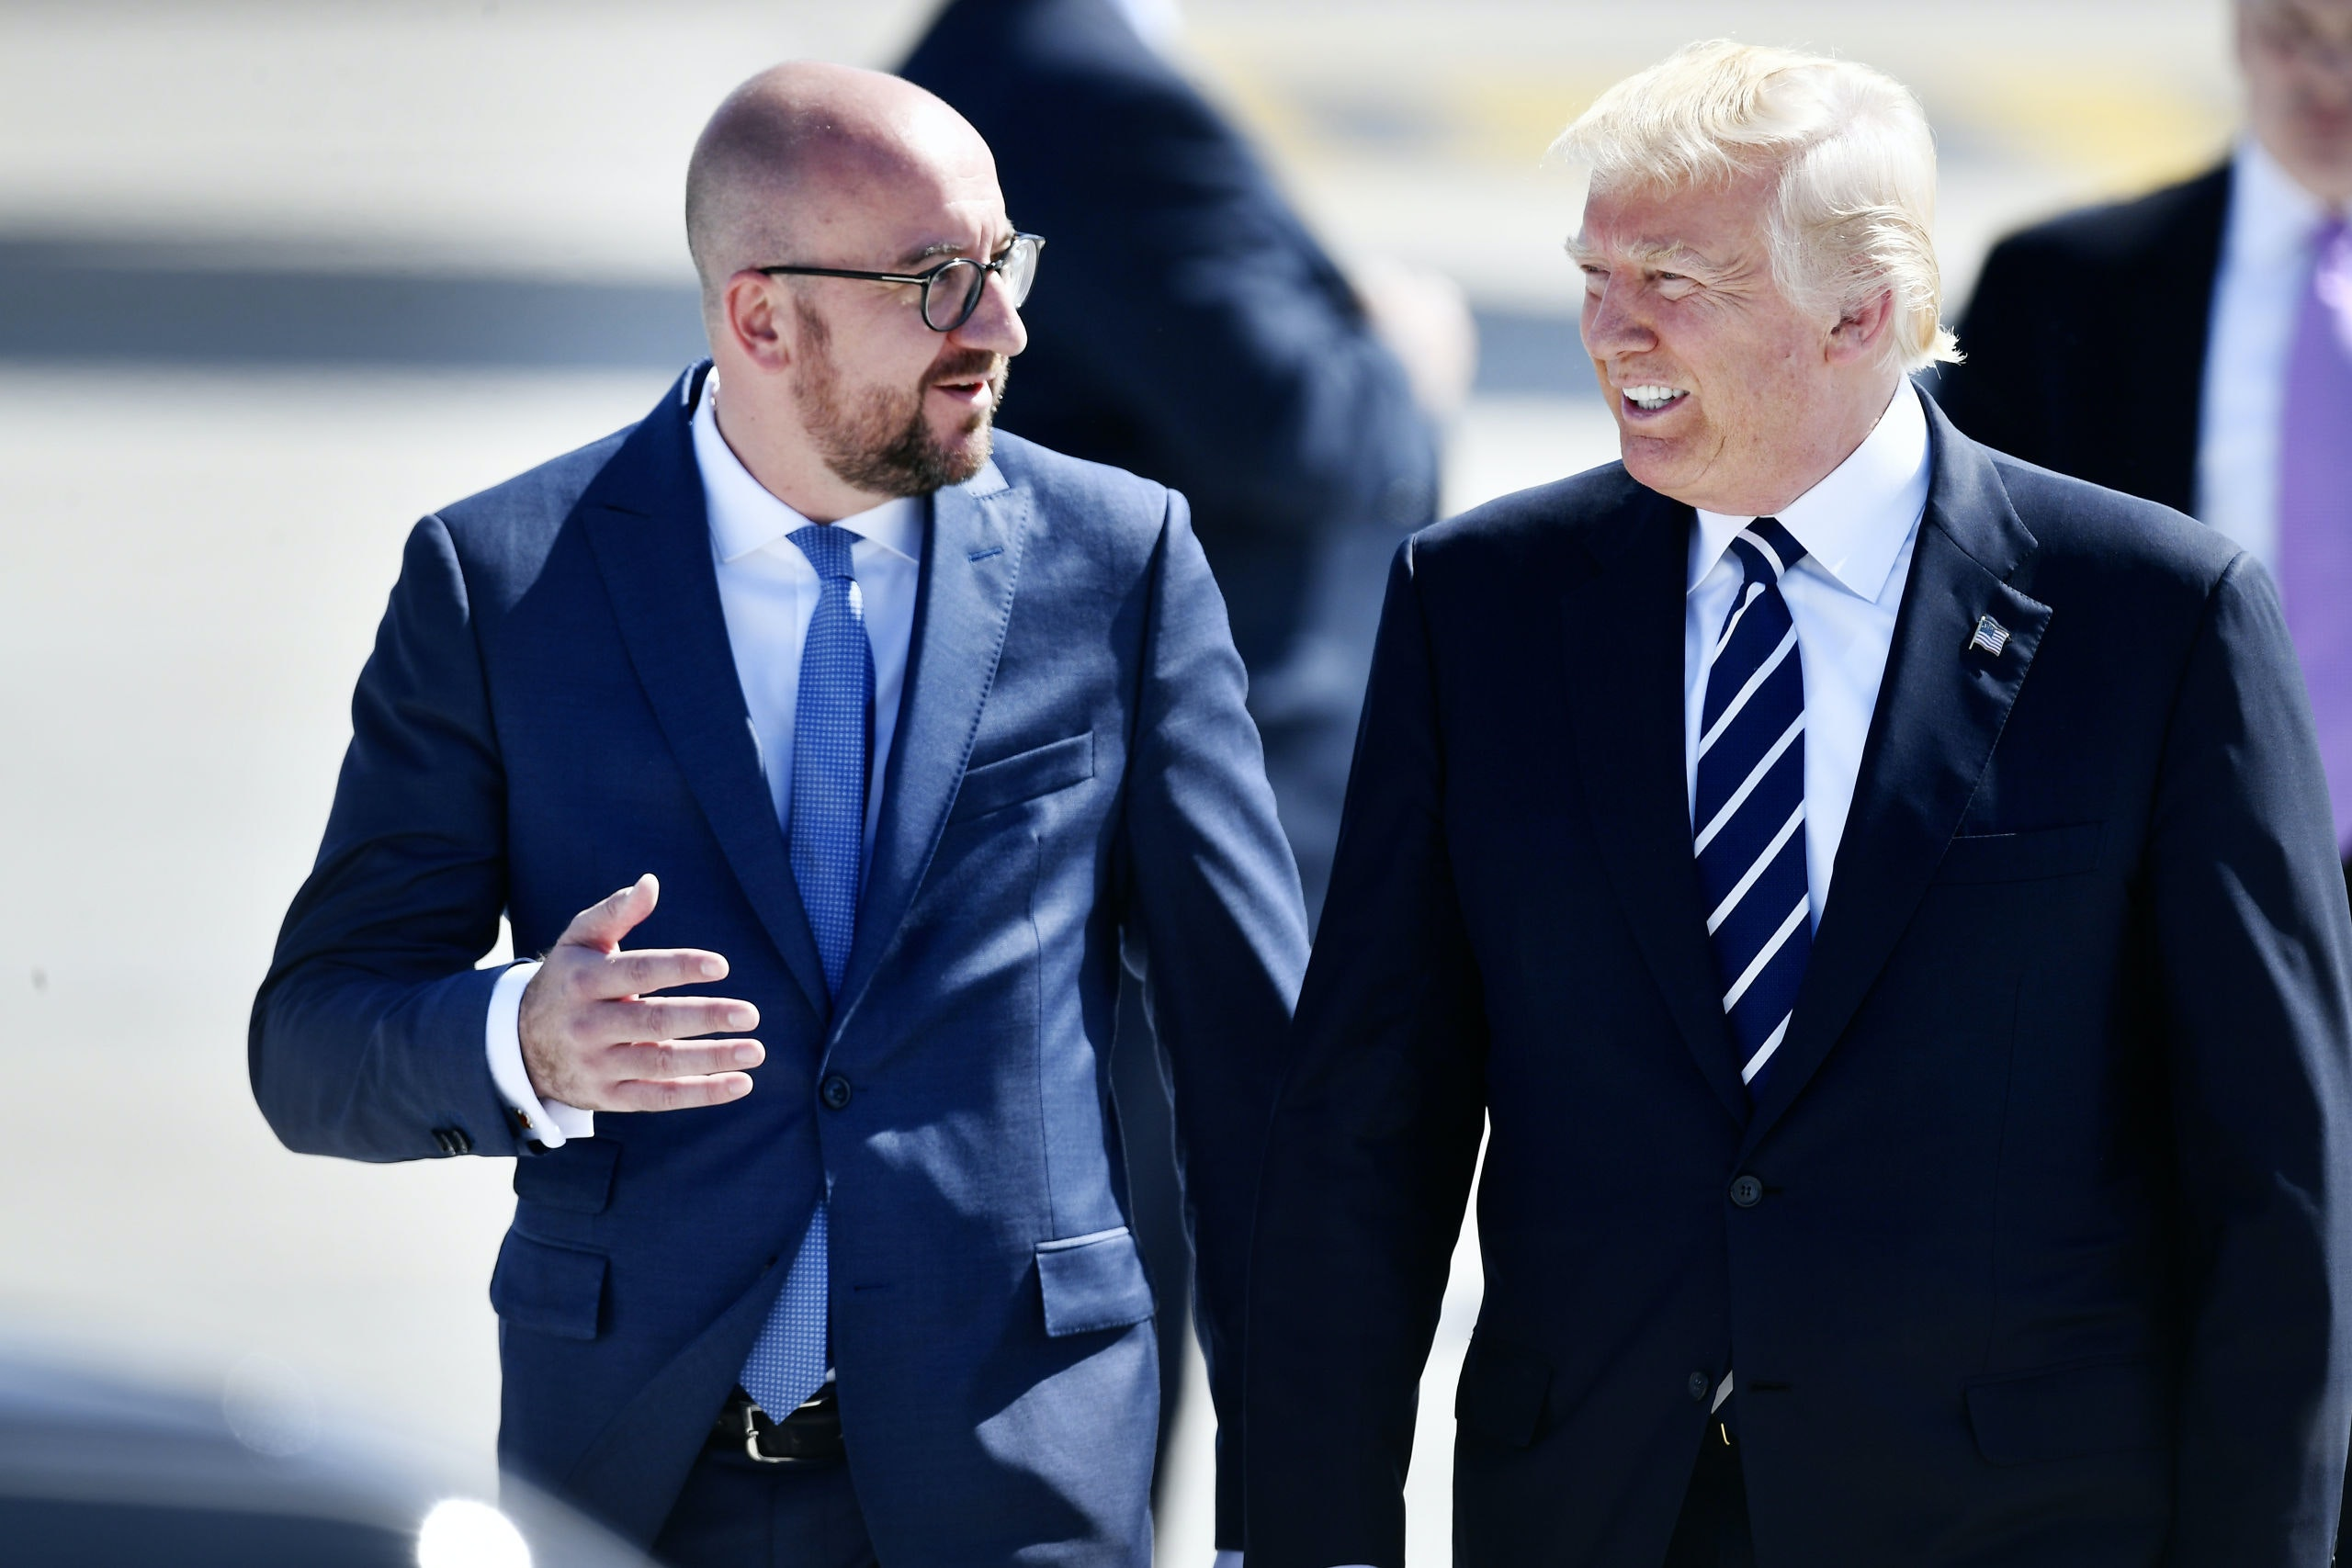 US President Donald Trump and Belgian Prime Minister Charles Michel pictured at the arrival of the President of The United States of America at the military airport in Melsbroek, Steenokkerzeel, Wednesday 24 May 2017. President Trump is on a two day visit to Belgium, to attend a NATO (North Atlantic Treaty Organization) summit on Thursday. BELGA PHOTO ERIC LALMAND